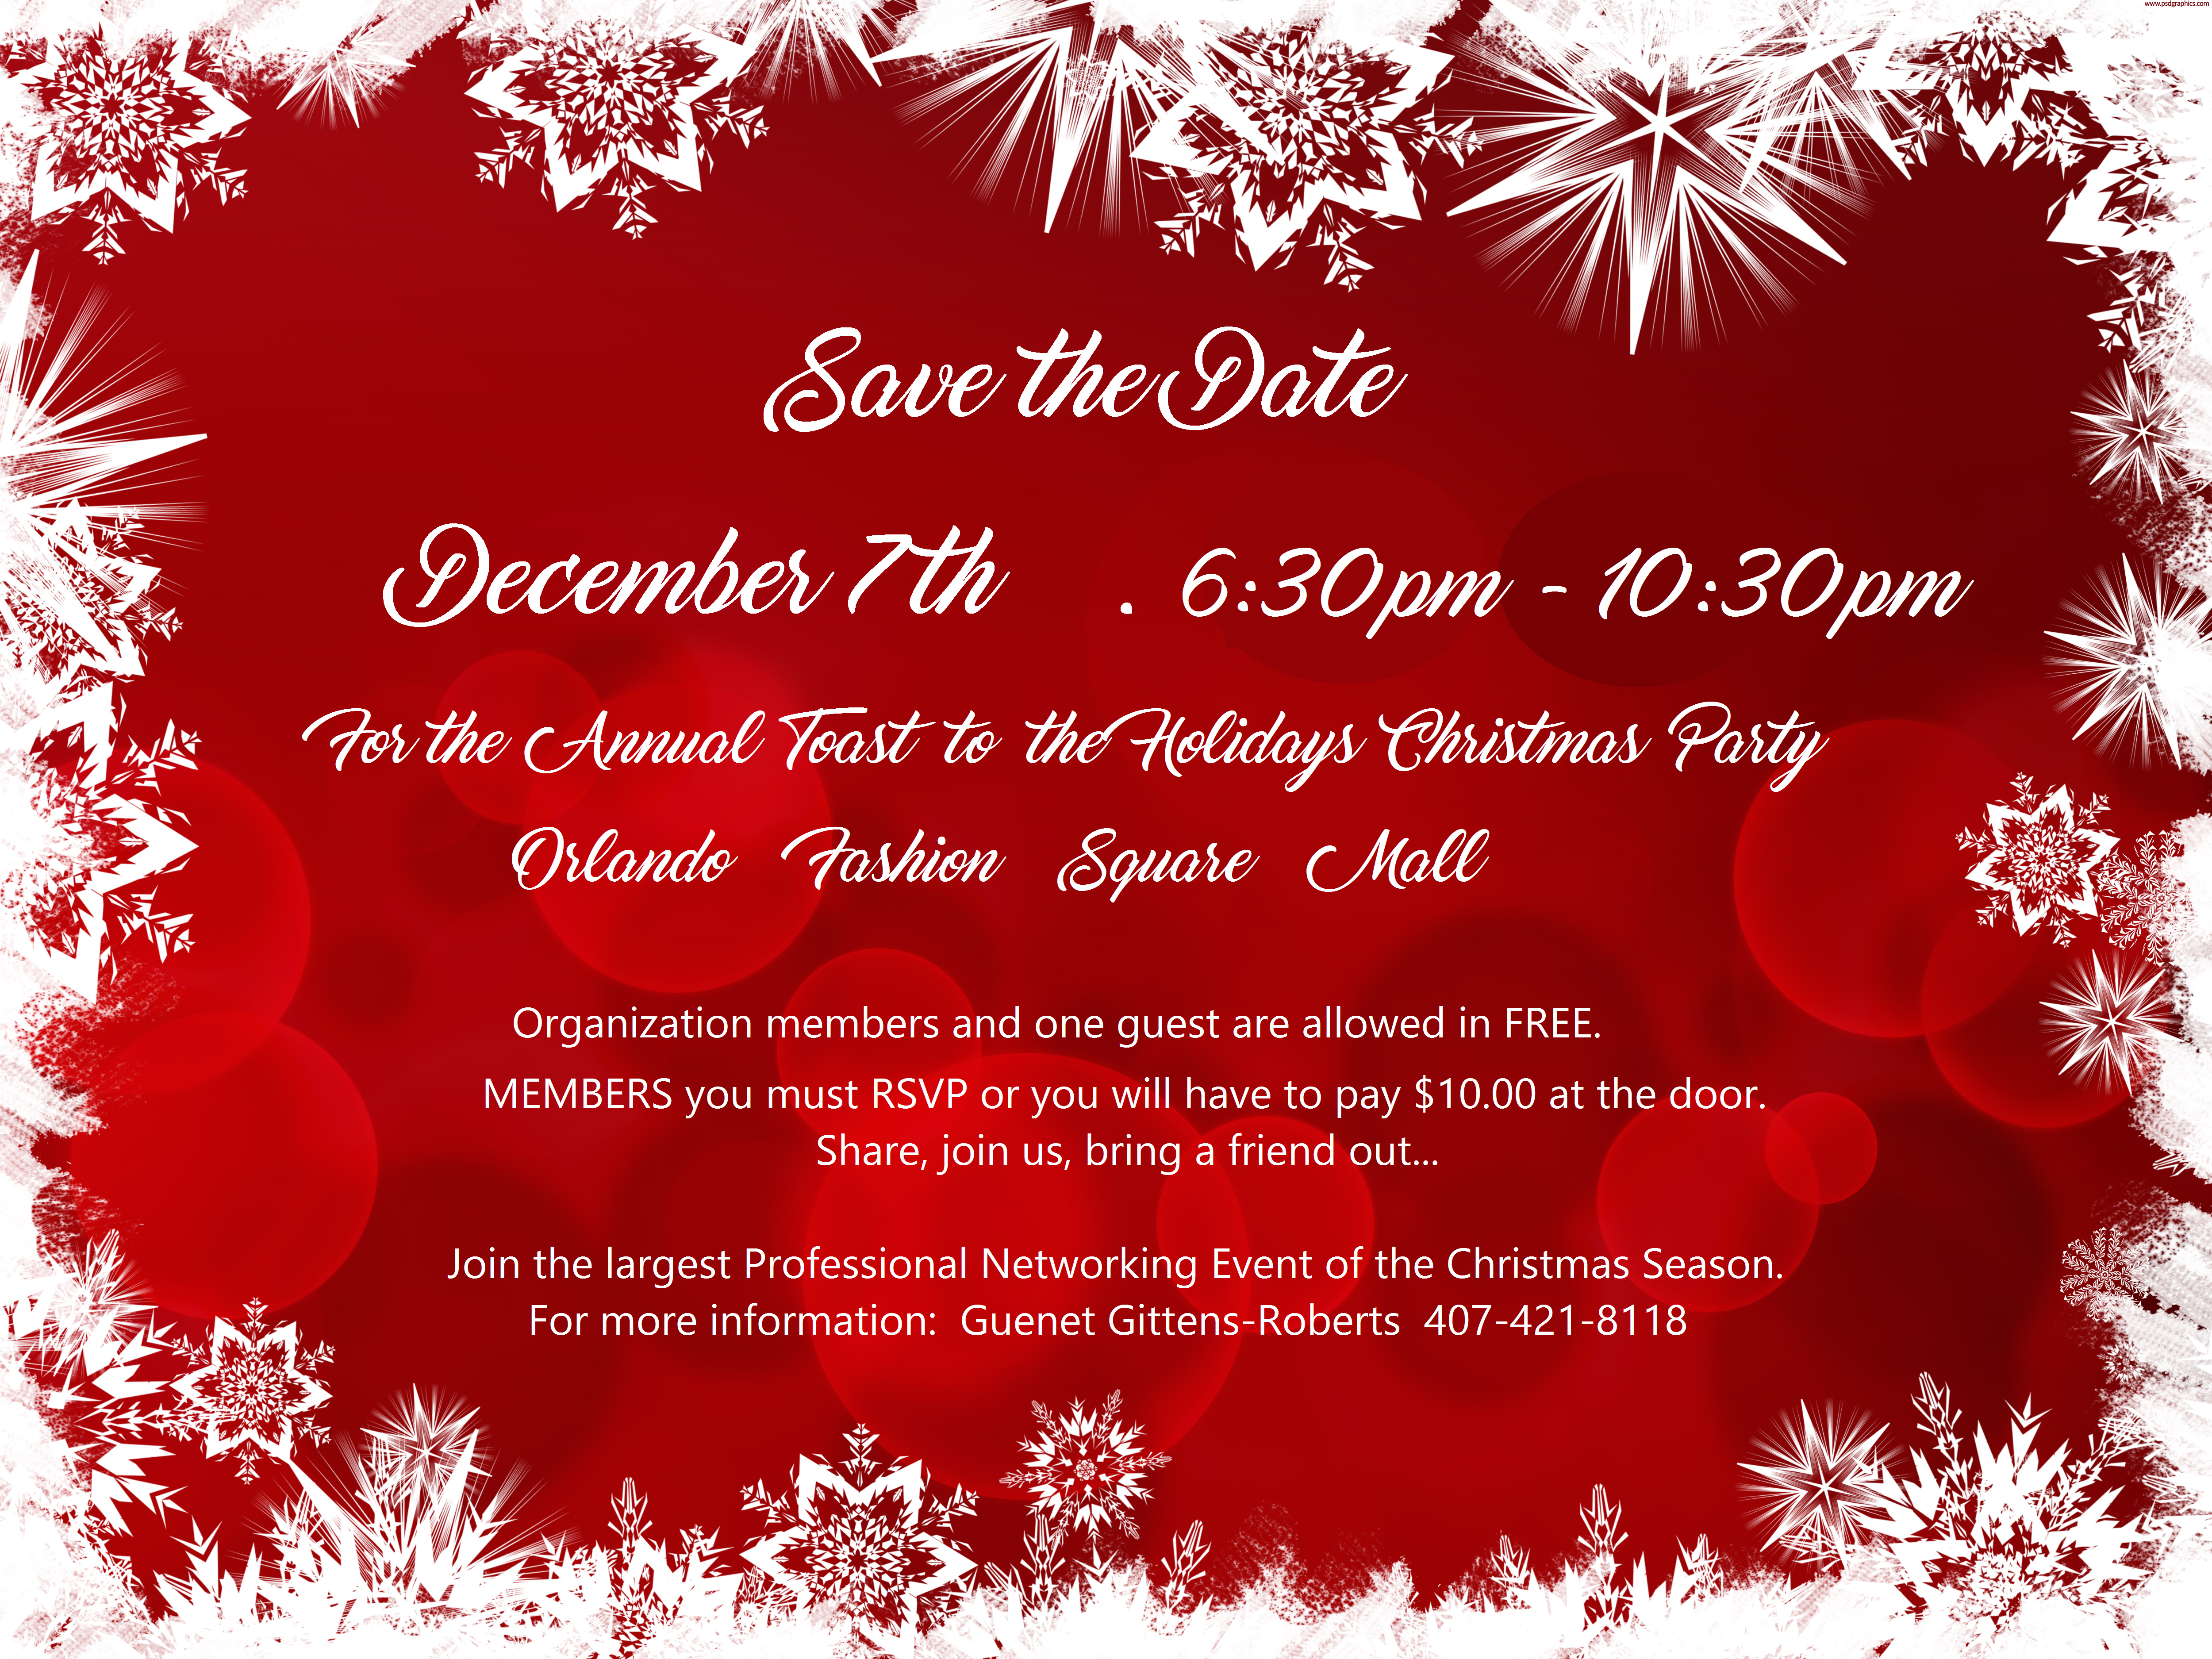 5th Annual Toast To The Holidays Joint Professional Organization